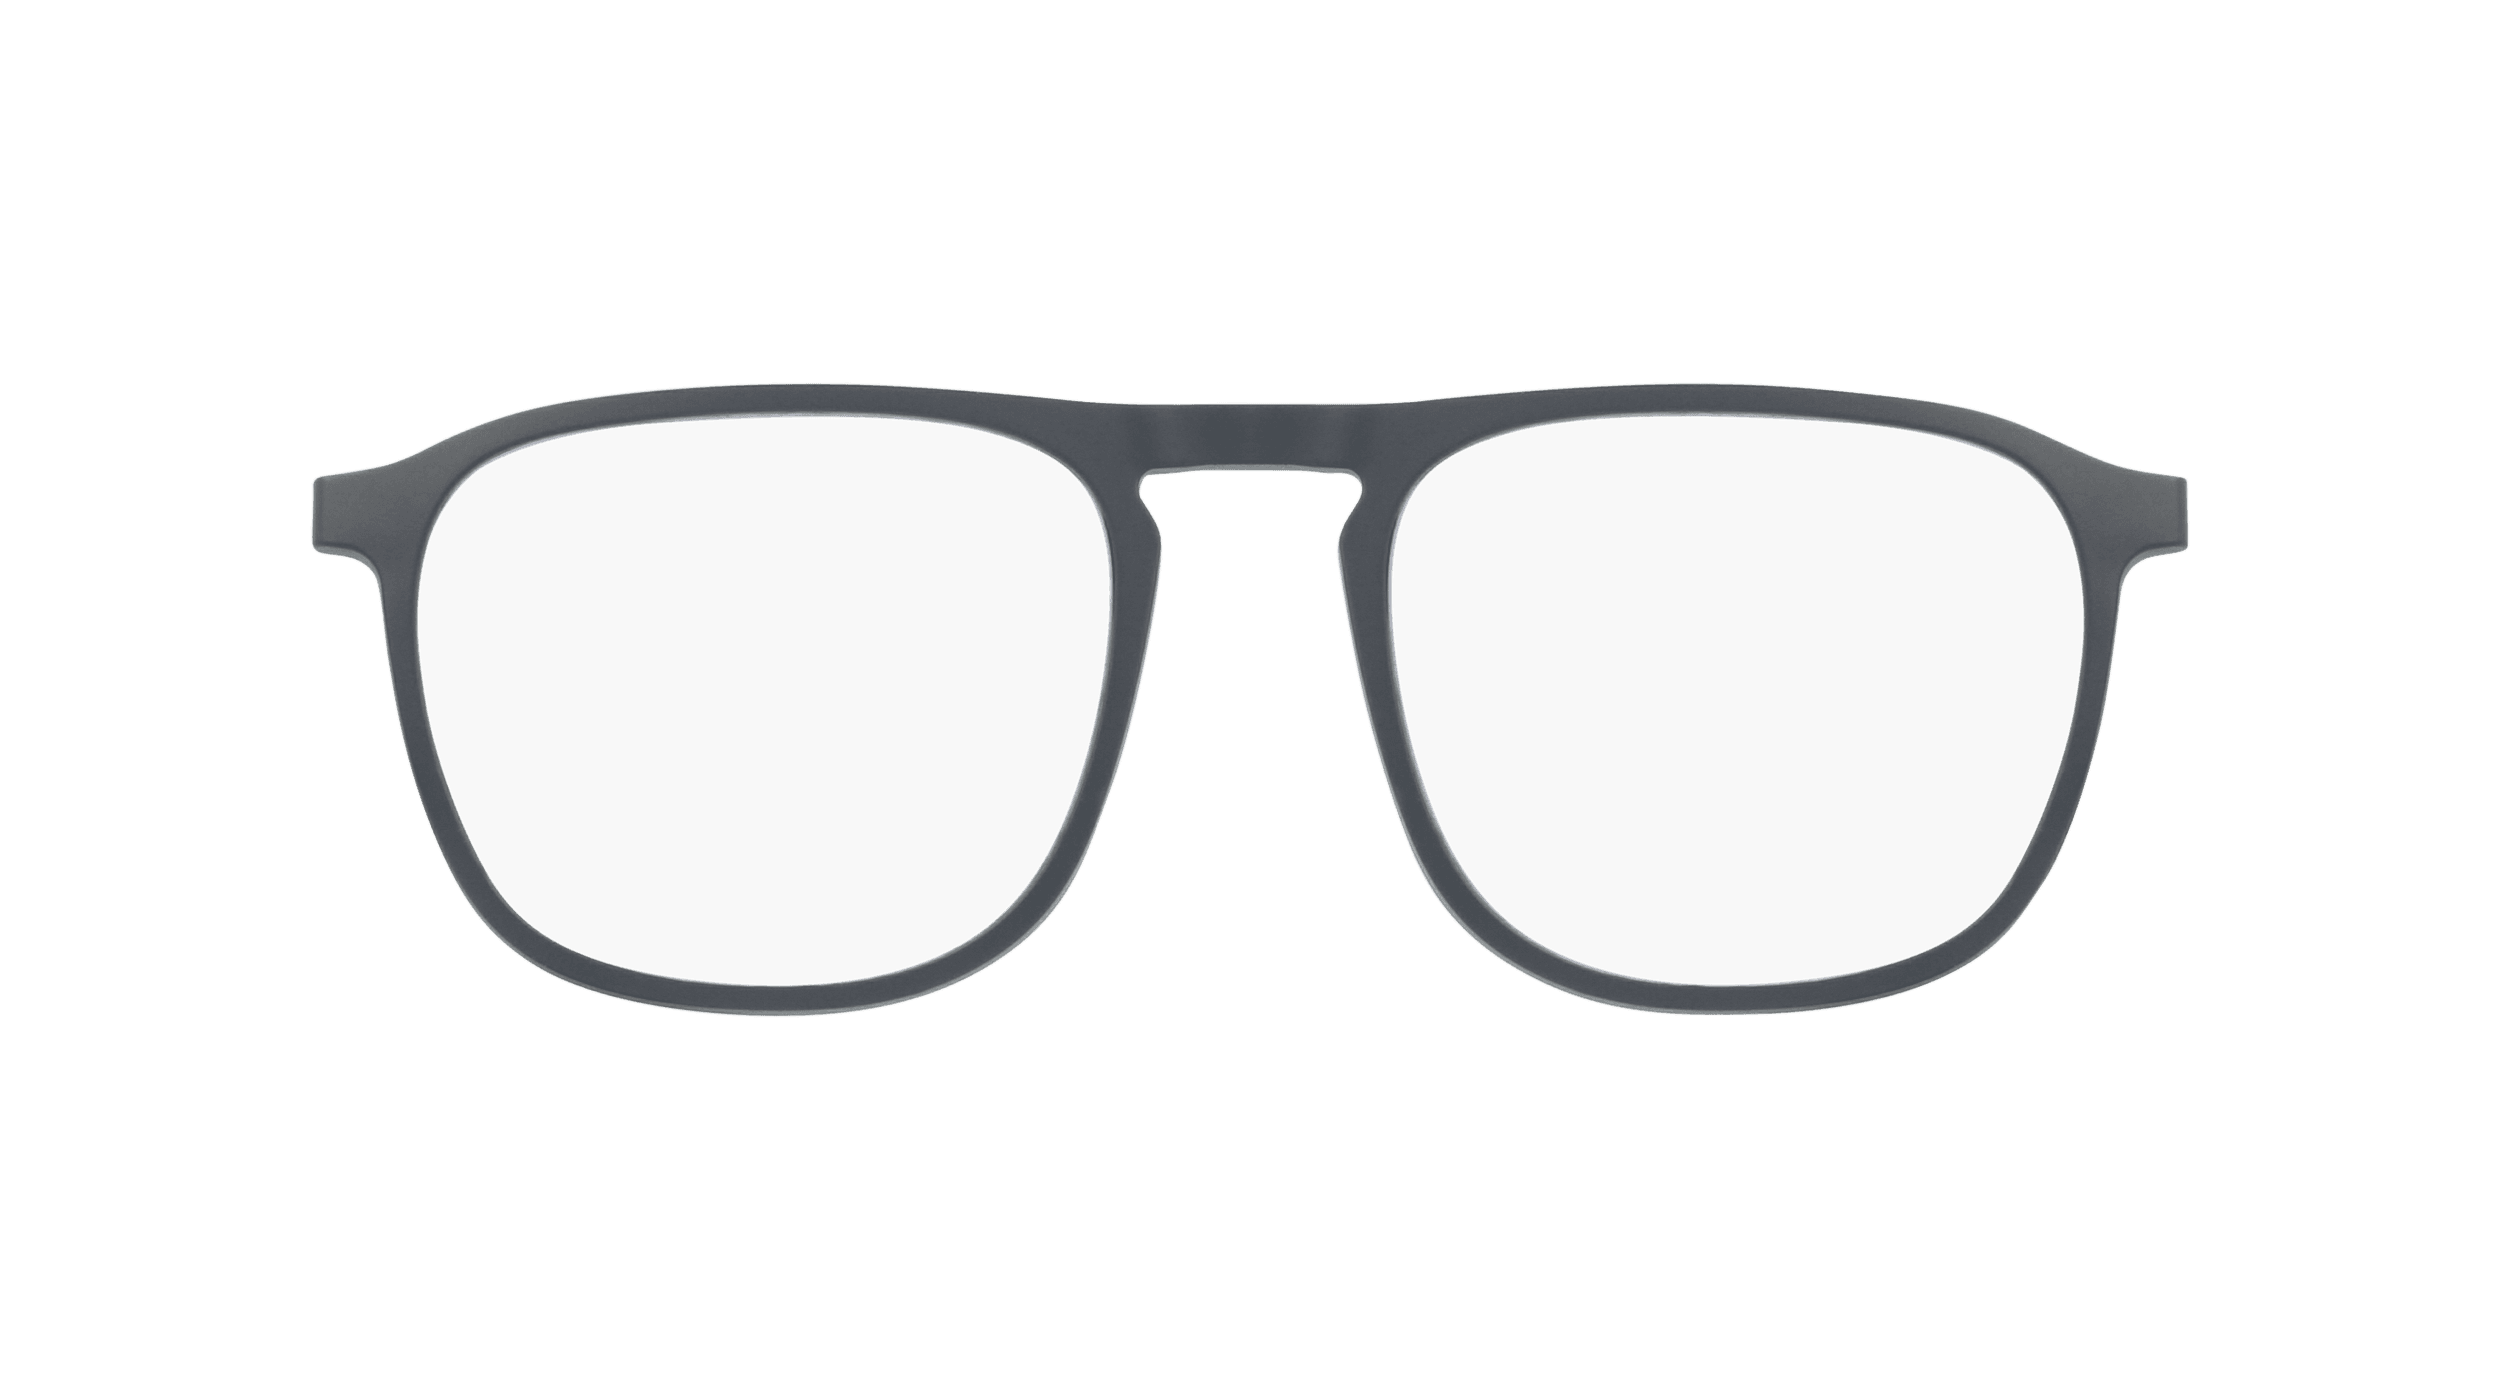 afflelou/france/products/smart_clip/clips_glasses/07630036457238.png